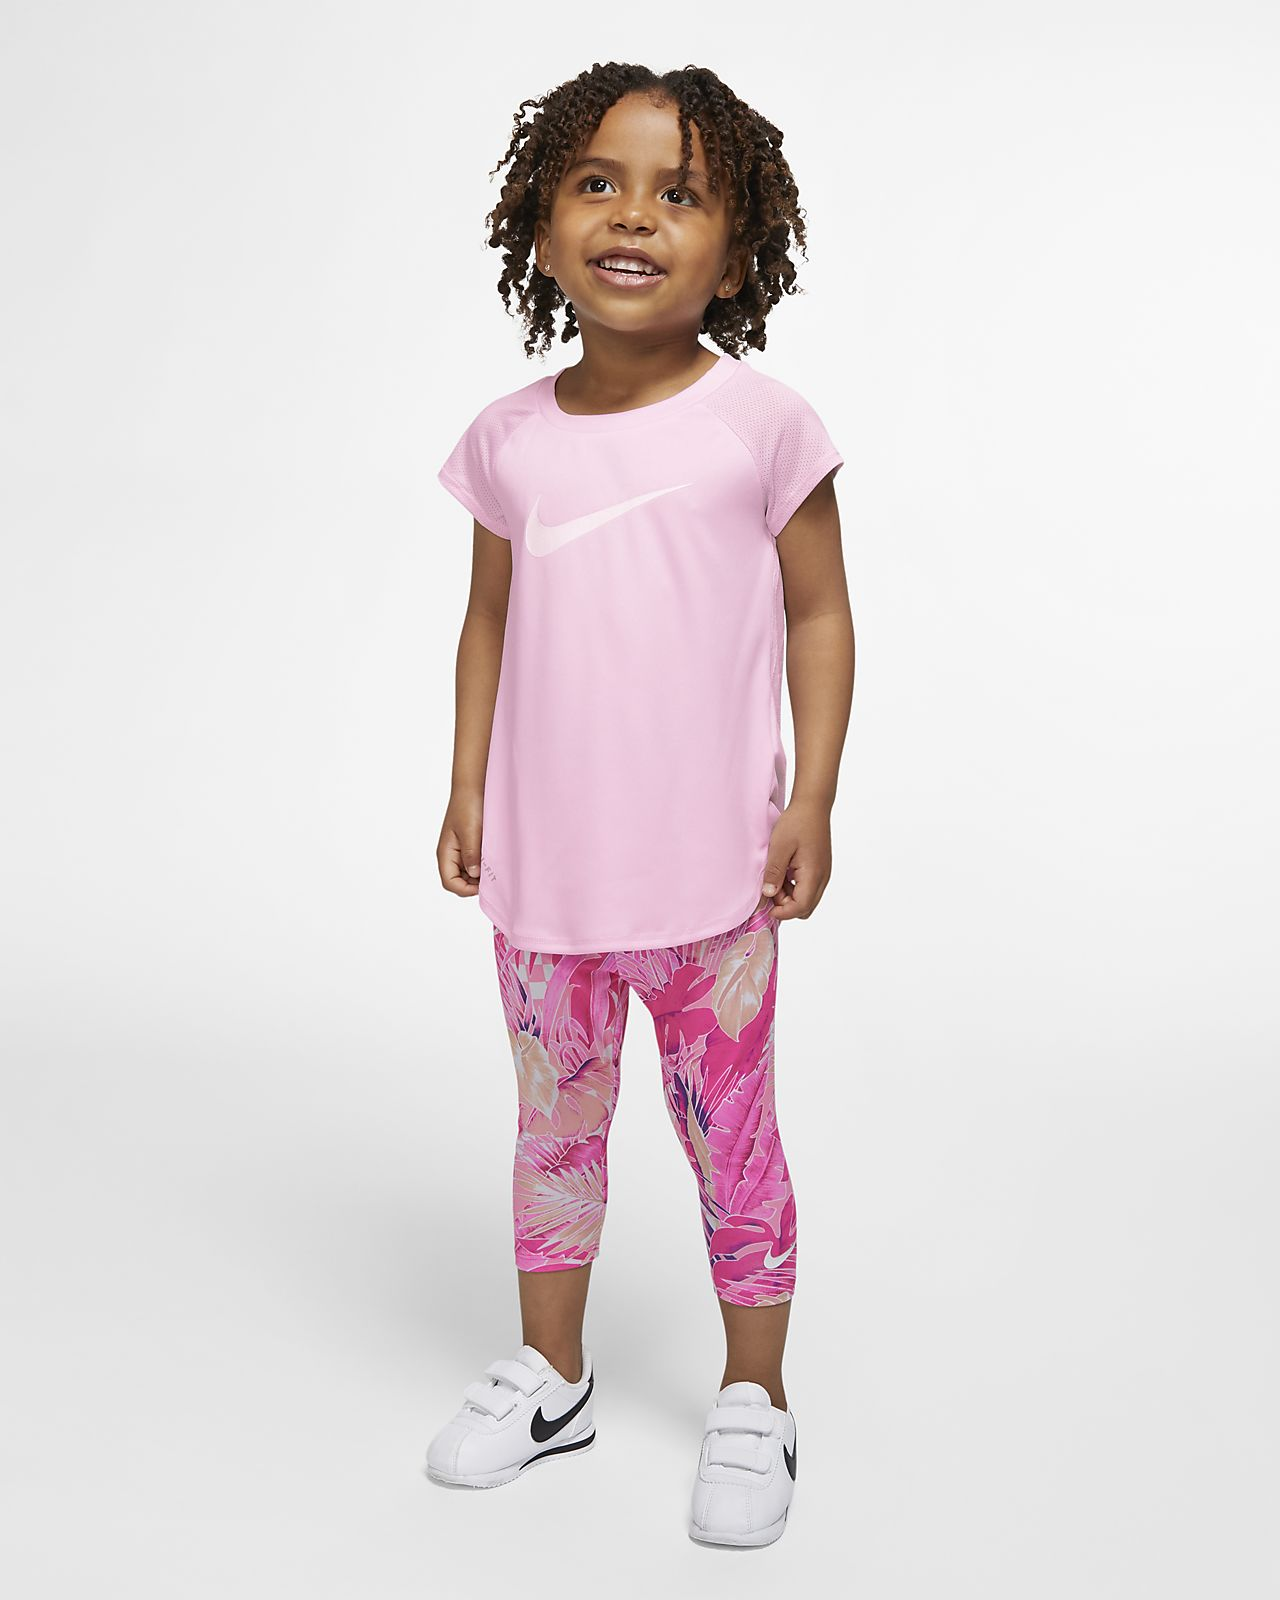 Nike Dri-FIT Toddler 2-Piece Set